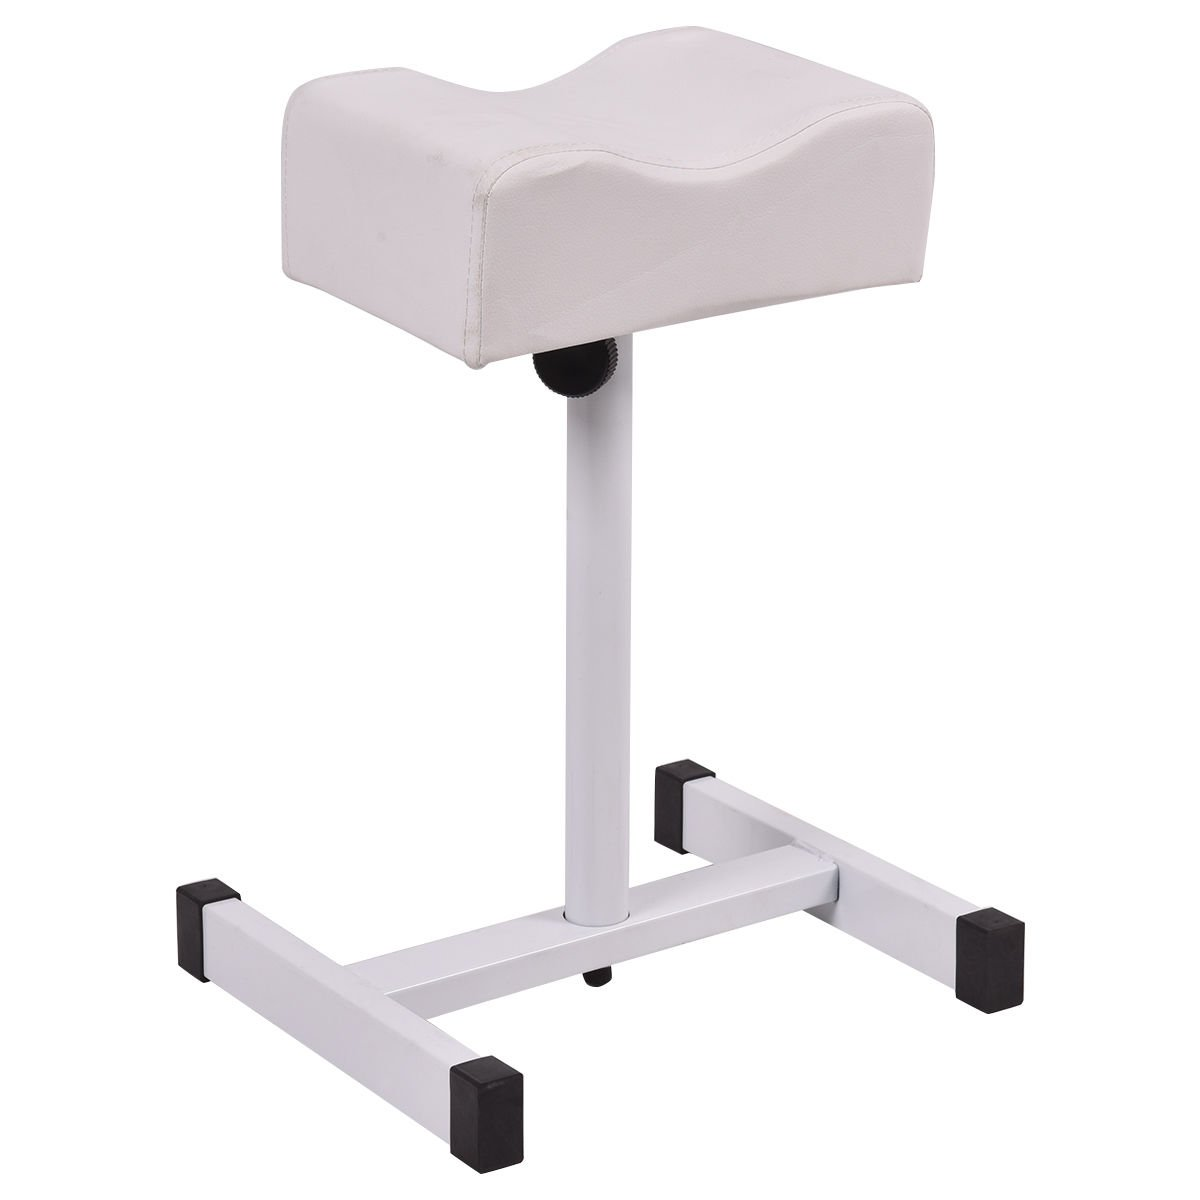 Giantex Pedicure Manicure Footrest W/Adjustable Seat Height Technician Nail Equipment Salon Spa (White) by Giantex